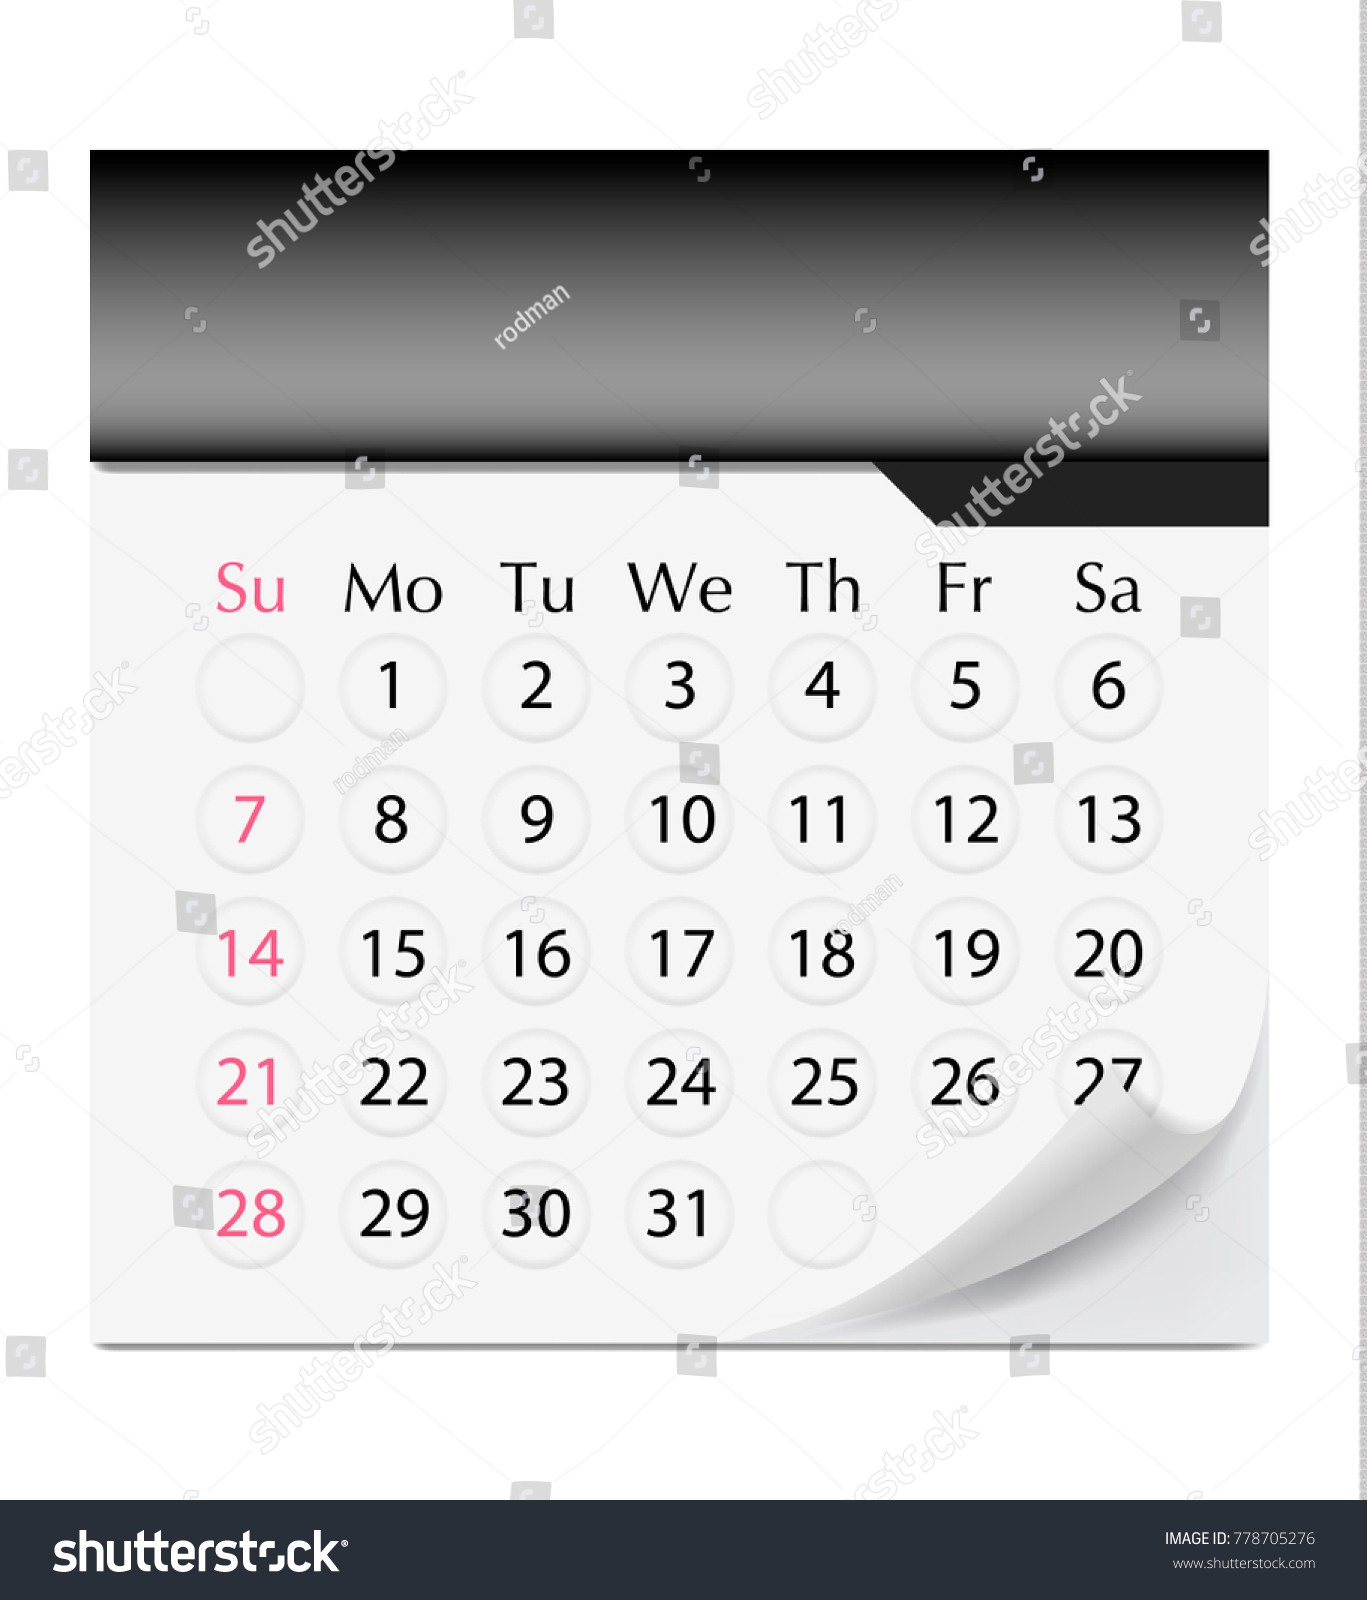 March Calendar Vector Más Populares Detailed Calendar Ukran Expolicenciaslatam Of March Calendar Vector Más Recientes 12 Month Calendar 2019 Printable